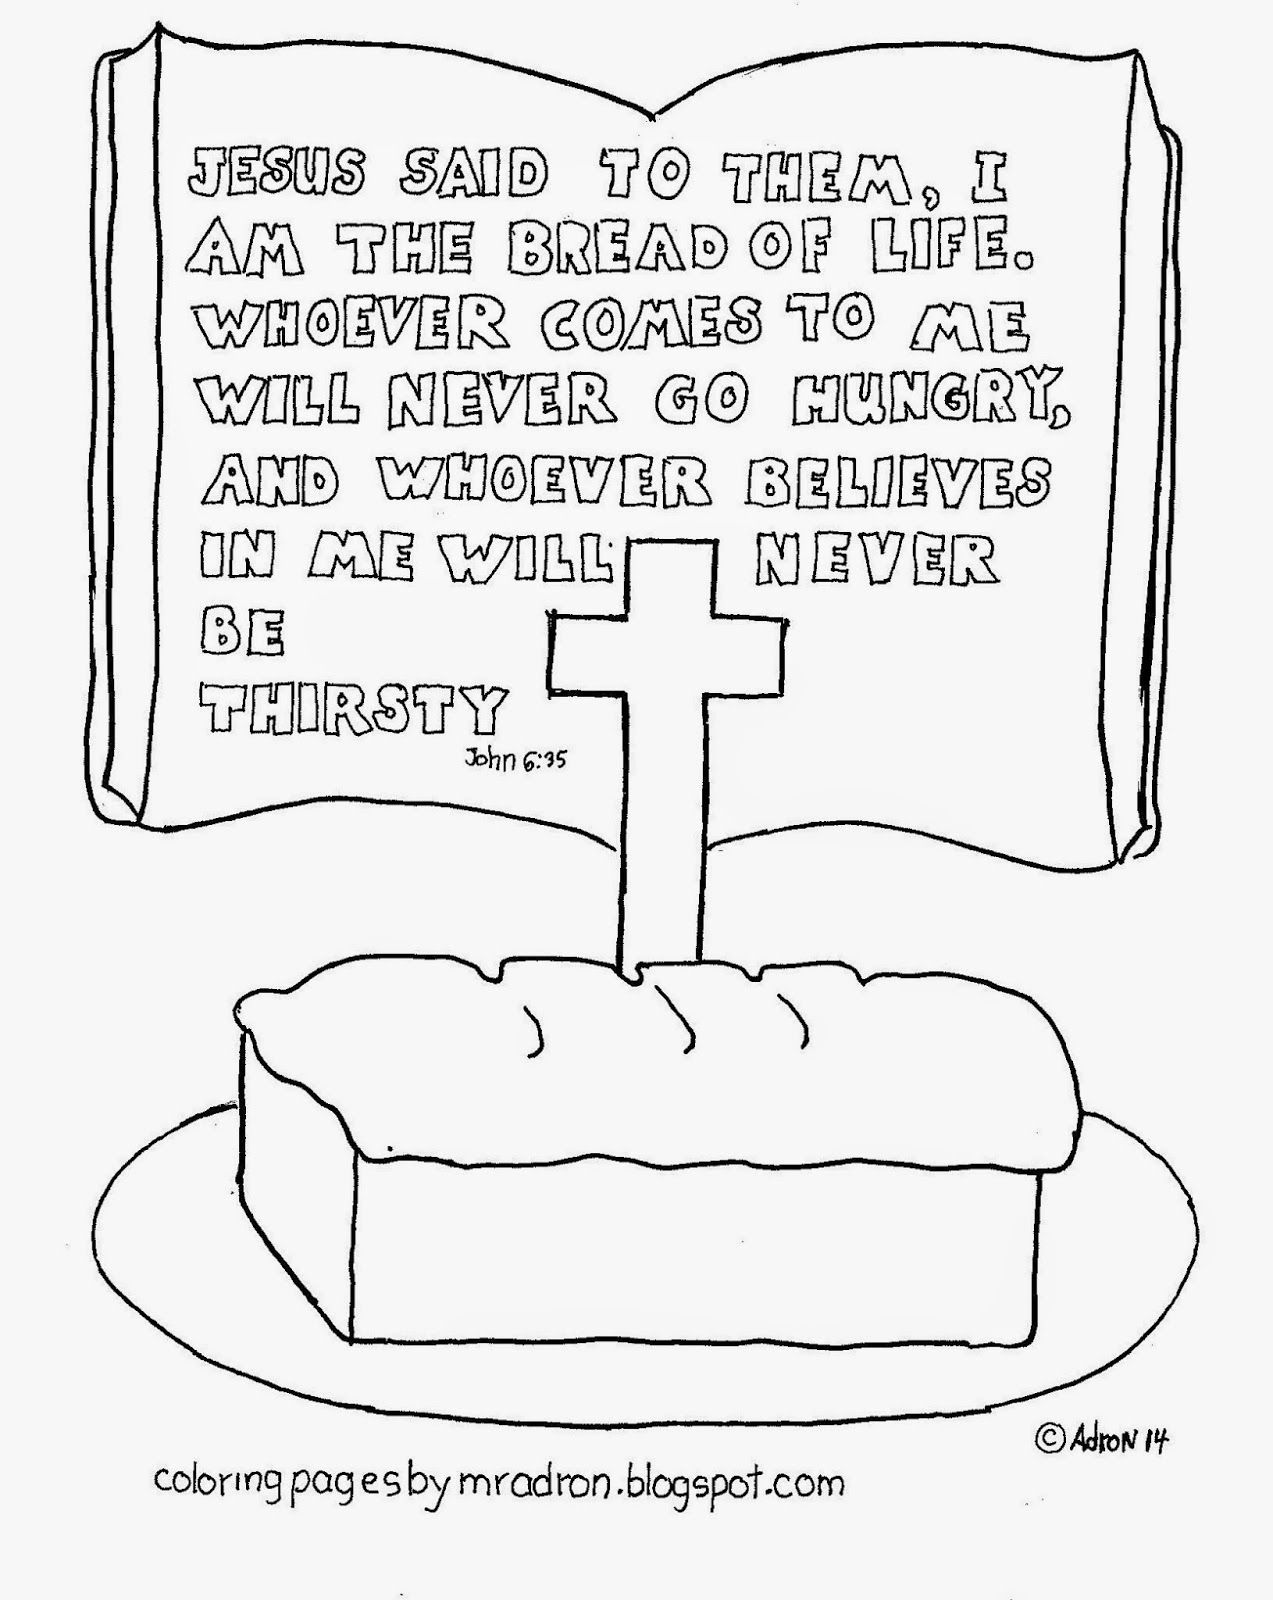 Words Of Jesus Coloring Page See More At My Blog Coloringpagesbymradronblogspot